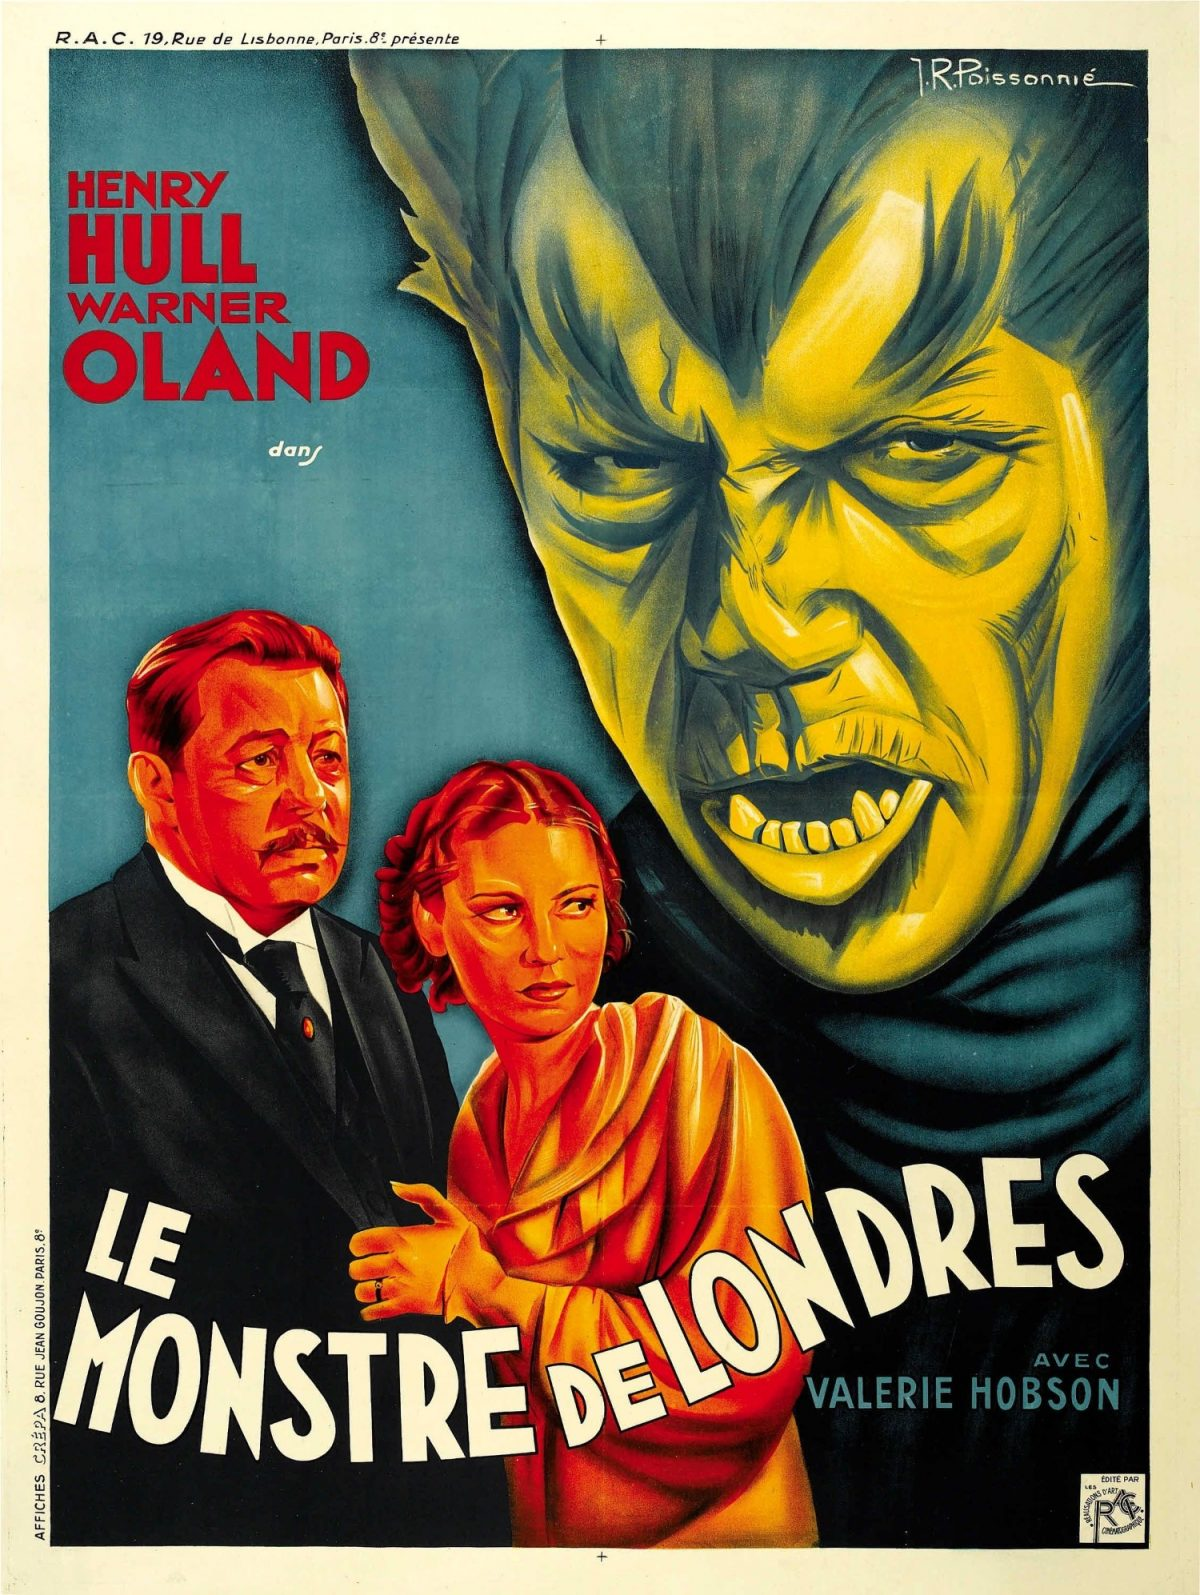 Werewolf of London, film, poster, horror, Henry Hull